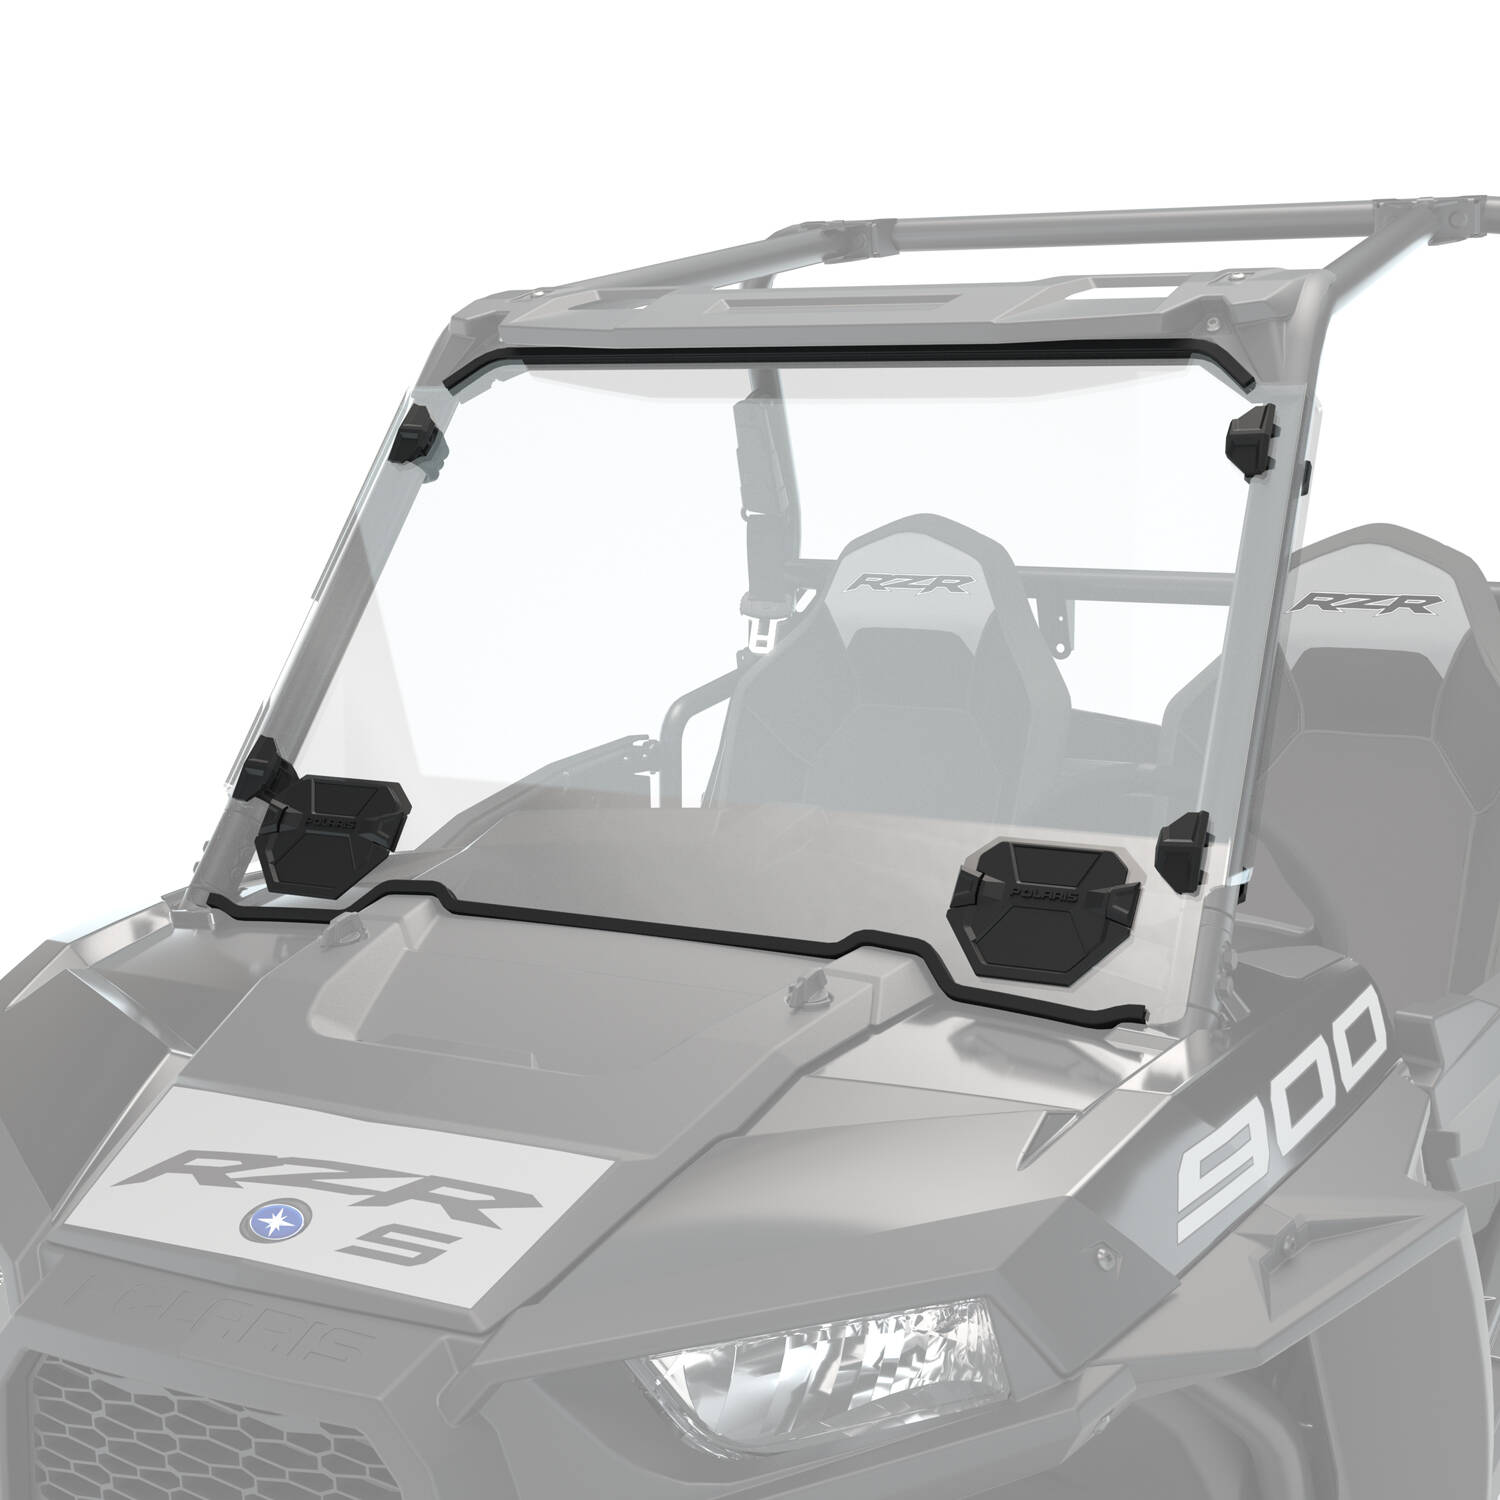 Polycarbonate Vented Full Windshield, Clear